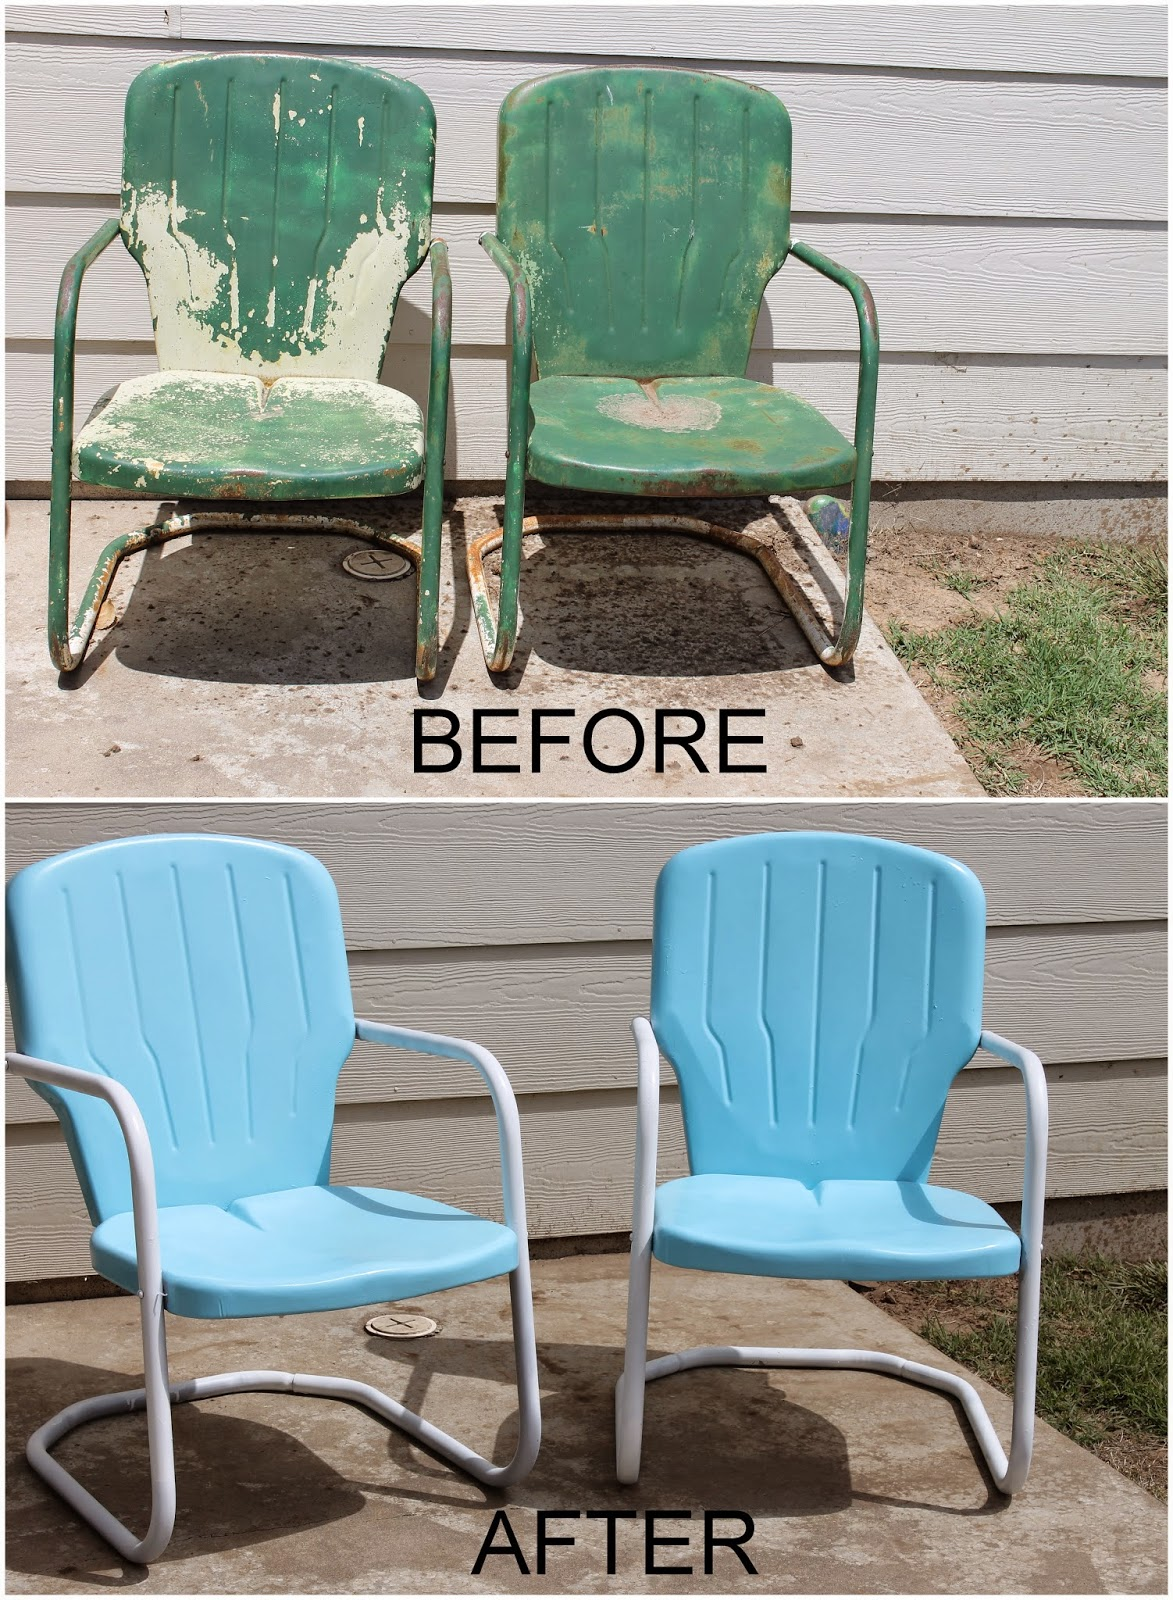 Repaint Old Metal Patio Chairs DIY paint outdoor metal  : chairs from lyndiprojects.blogspot.com size 1173 x 1600 jpeg 515kB